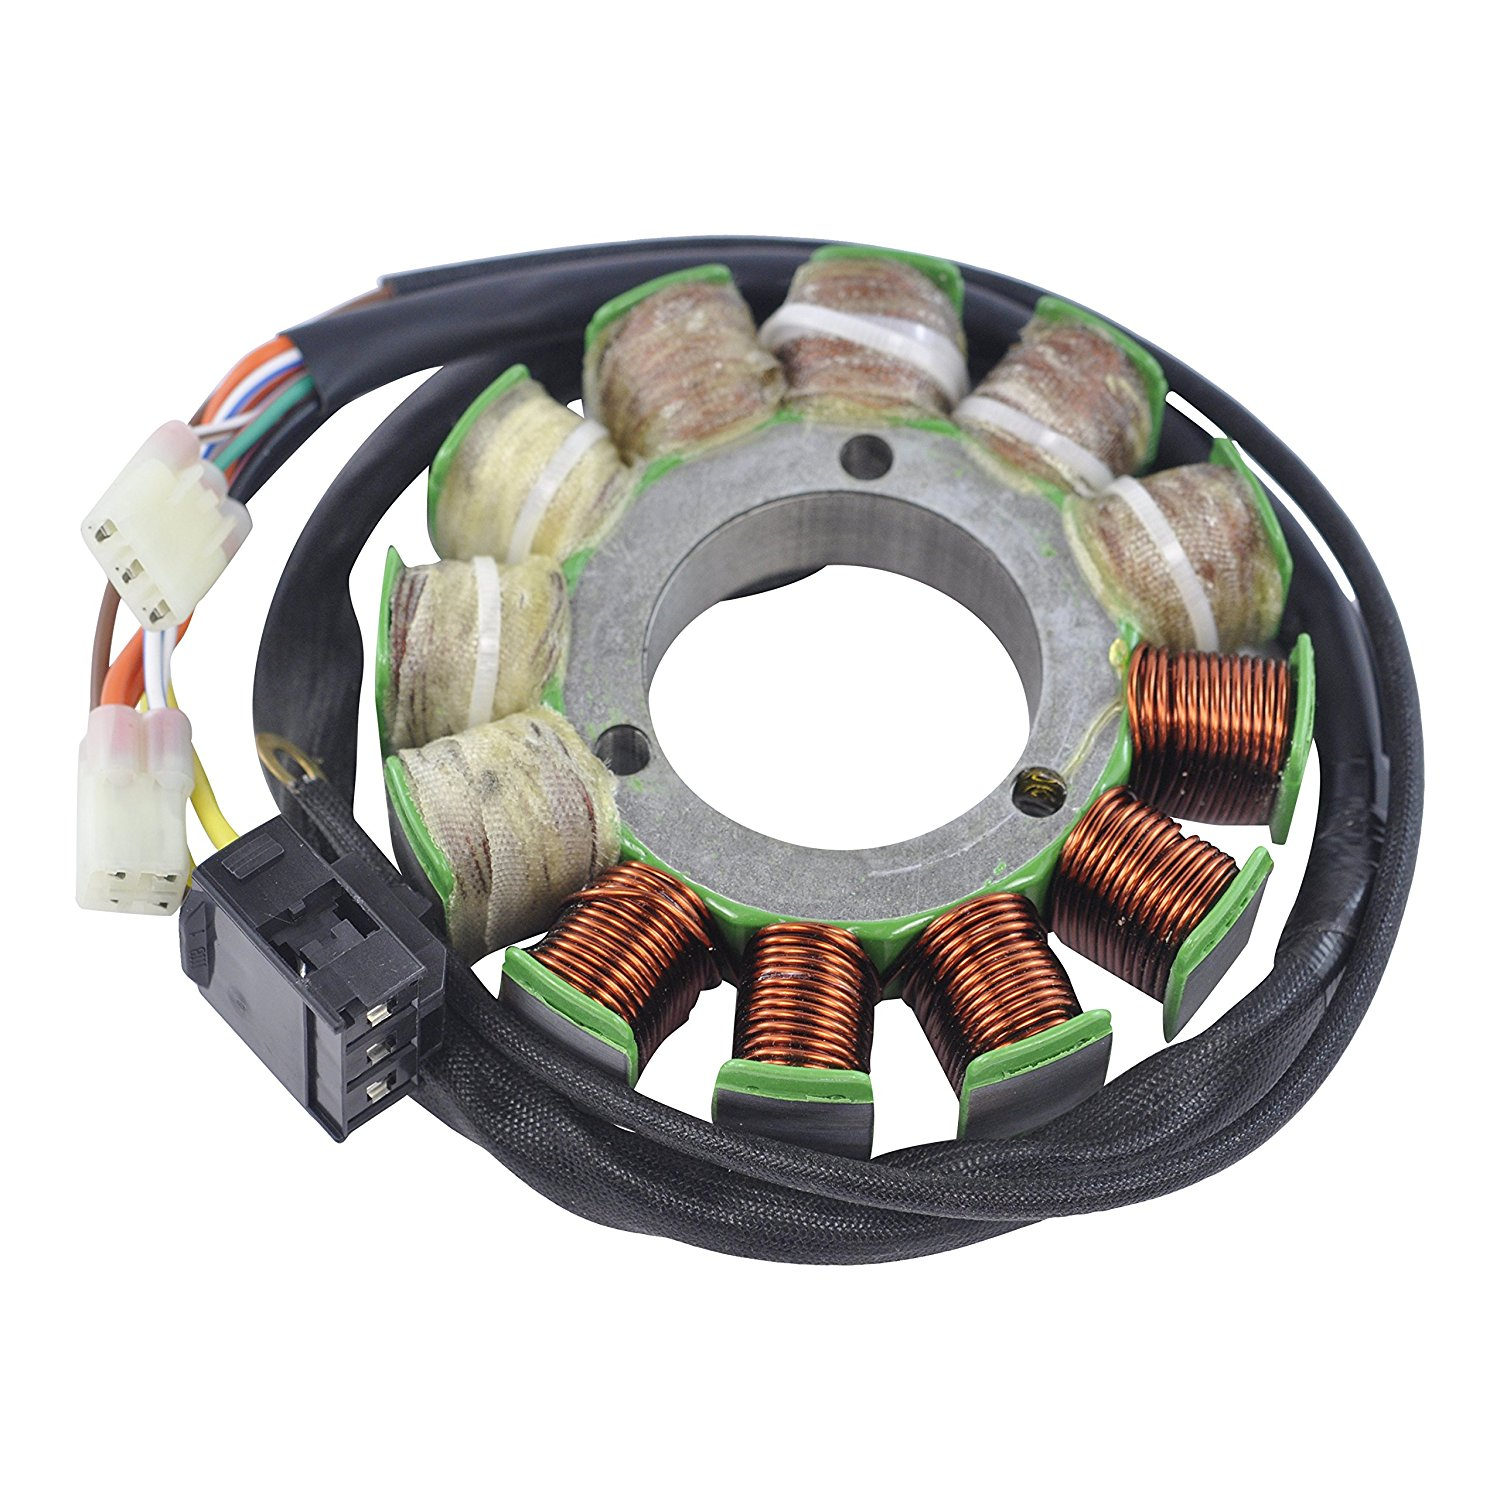 Stator Arctic Cat Crossfire F1000 Firecat M1000 M80000 M6 600 Mountain Cat M8 800 Sno Pro T500 XF800 ZR8000 2007-2015